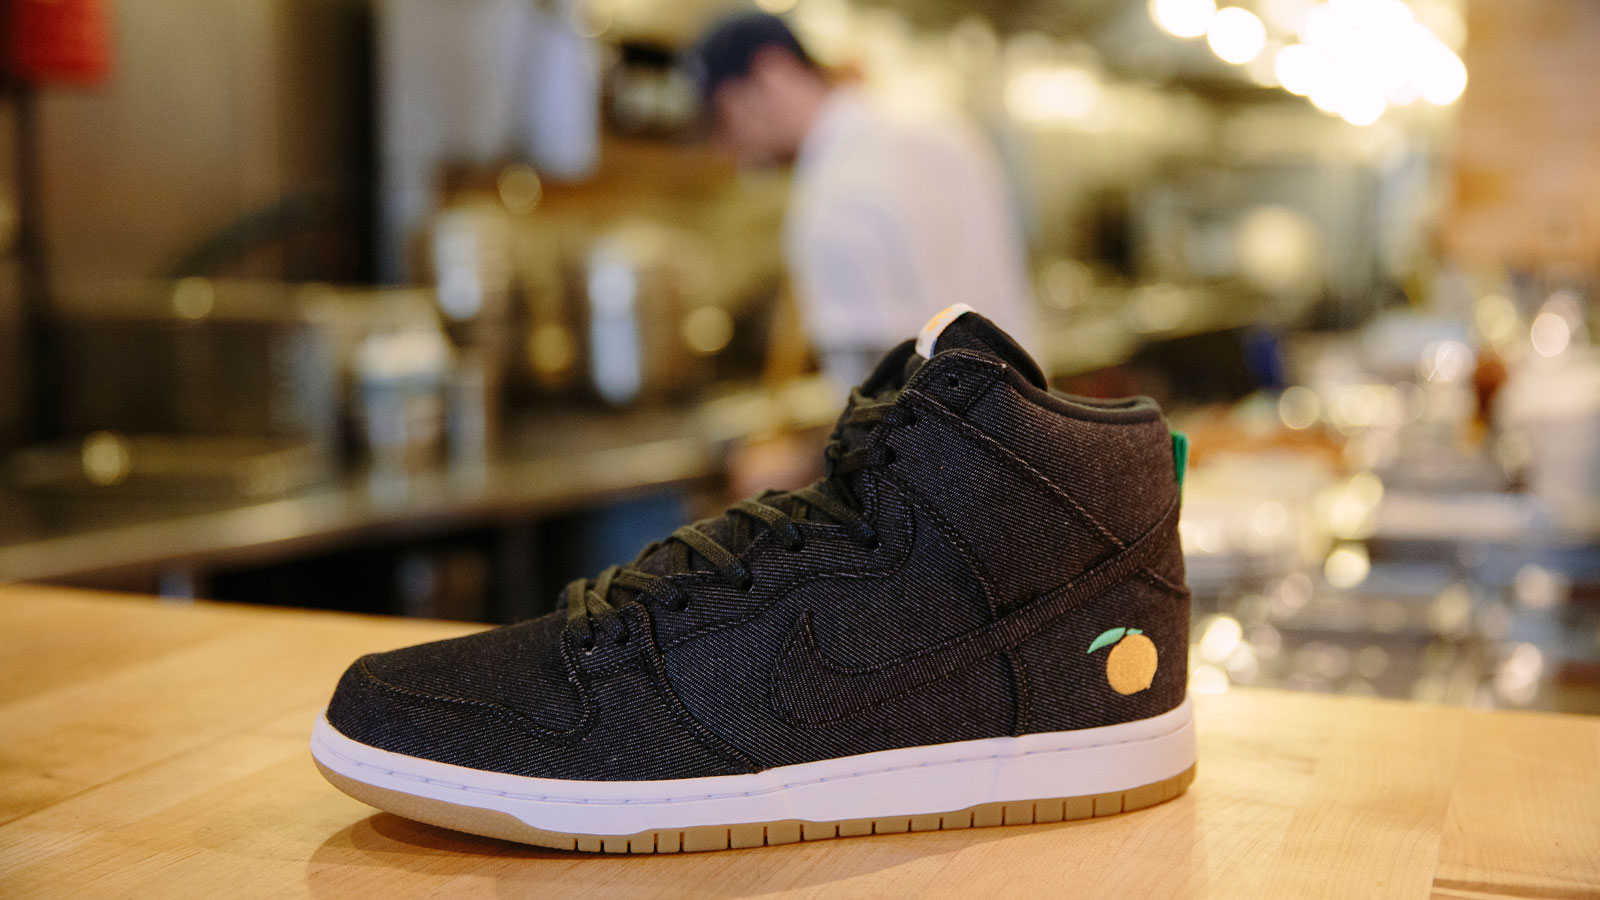 david-chang-nike-momofuku-1-FT-BLOG0617.jpg